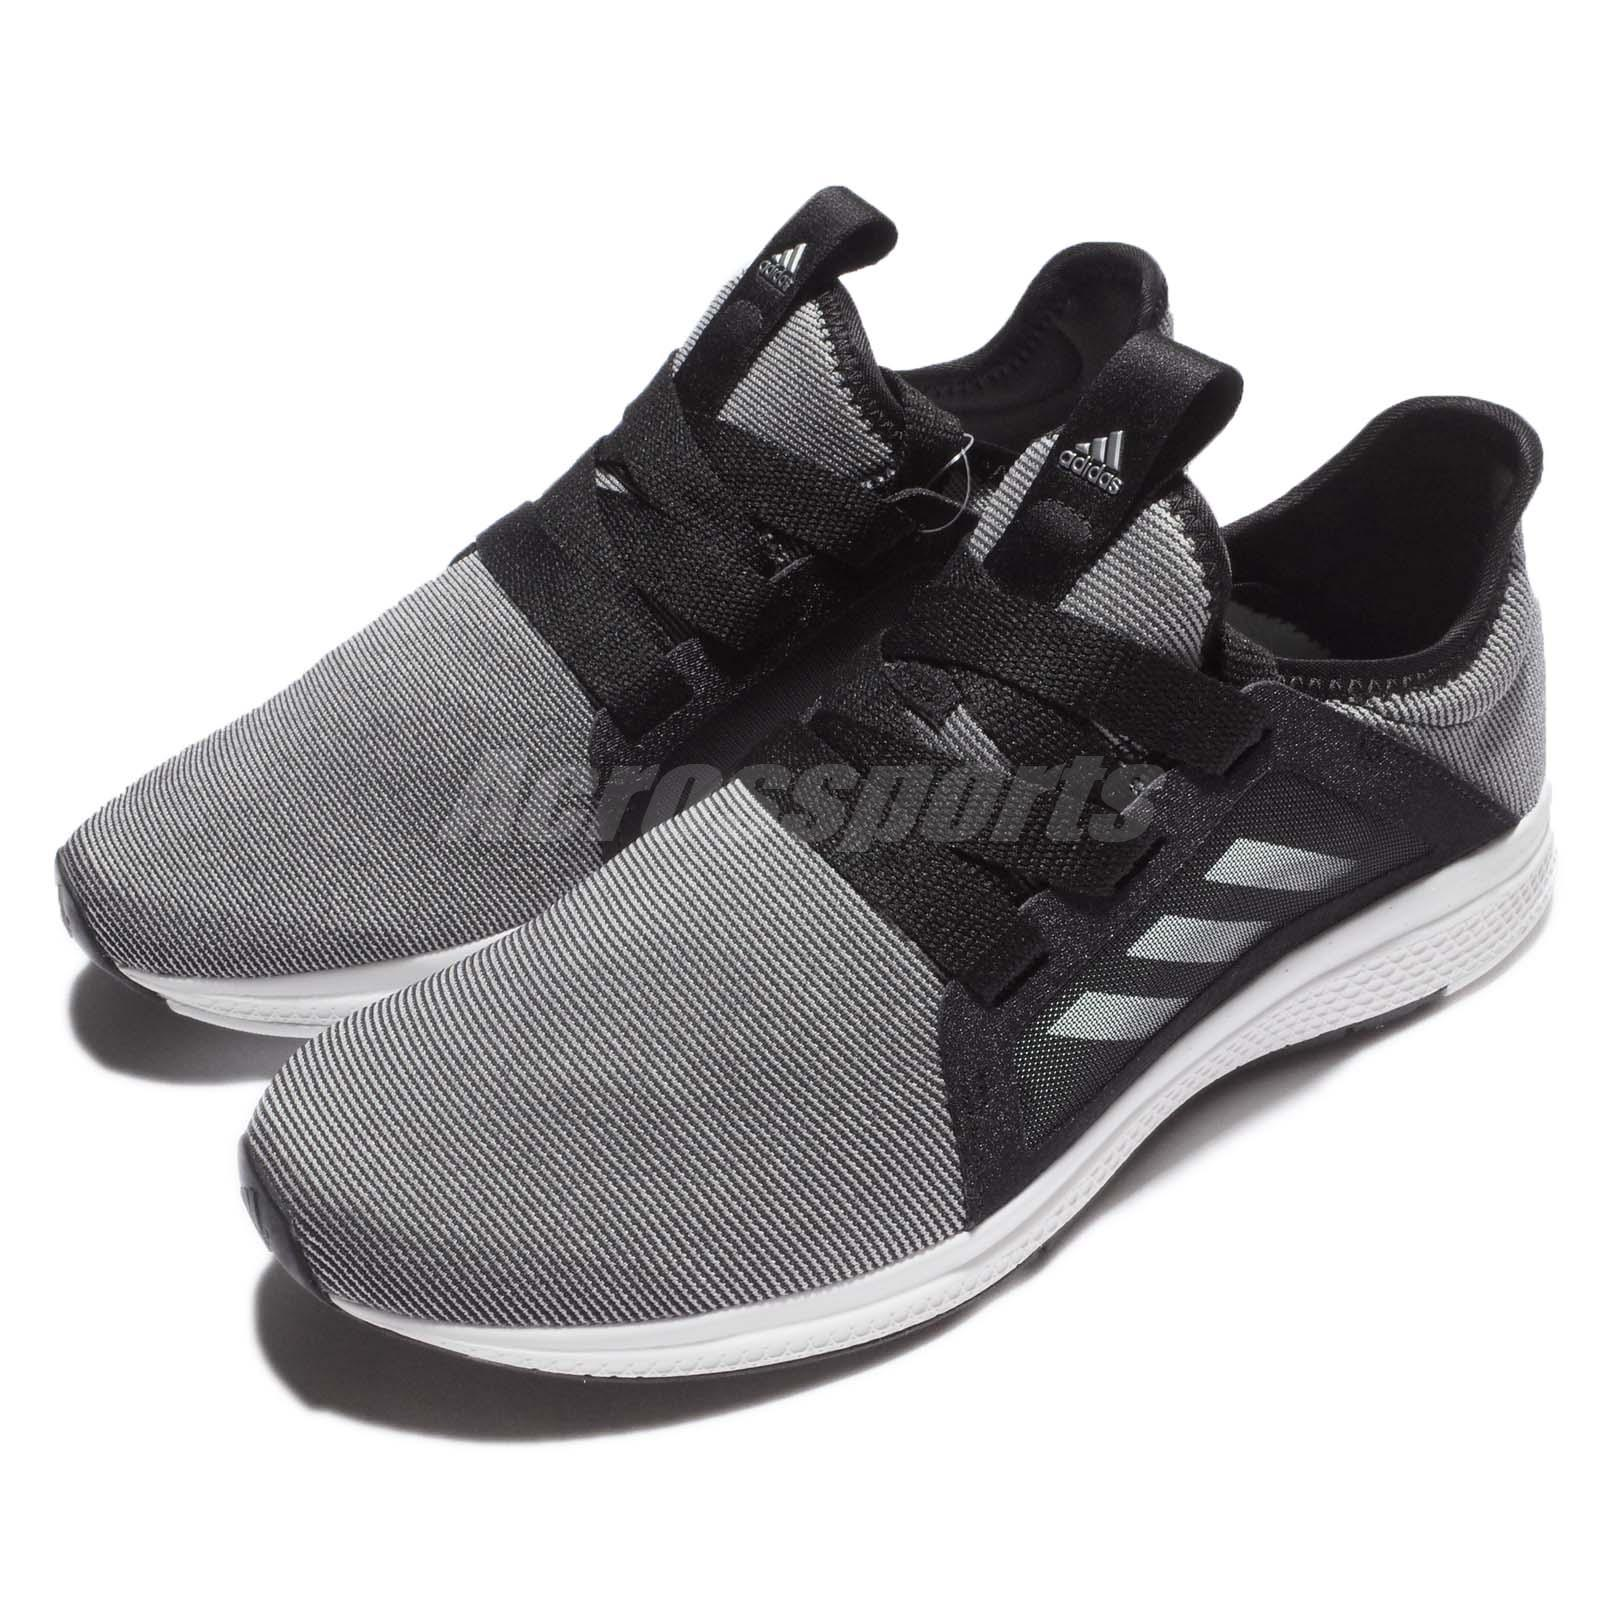 pretty nice 8f2b6 b7919 Details about adidas Edge Lux W BOUNCE Black Grey White Women Running Shoes  Sneakers BB8211